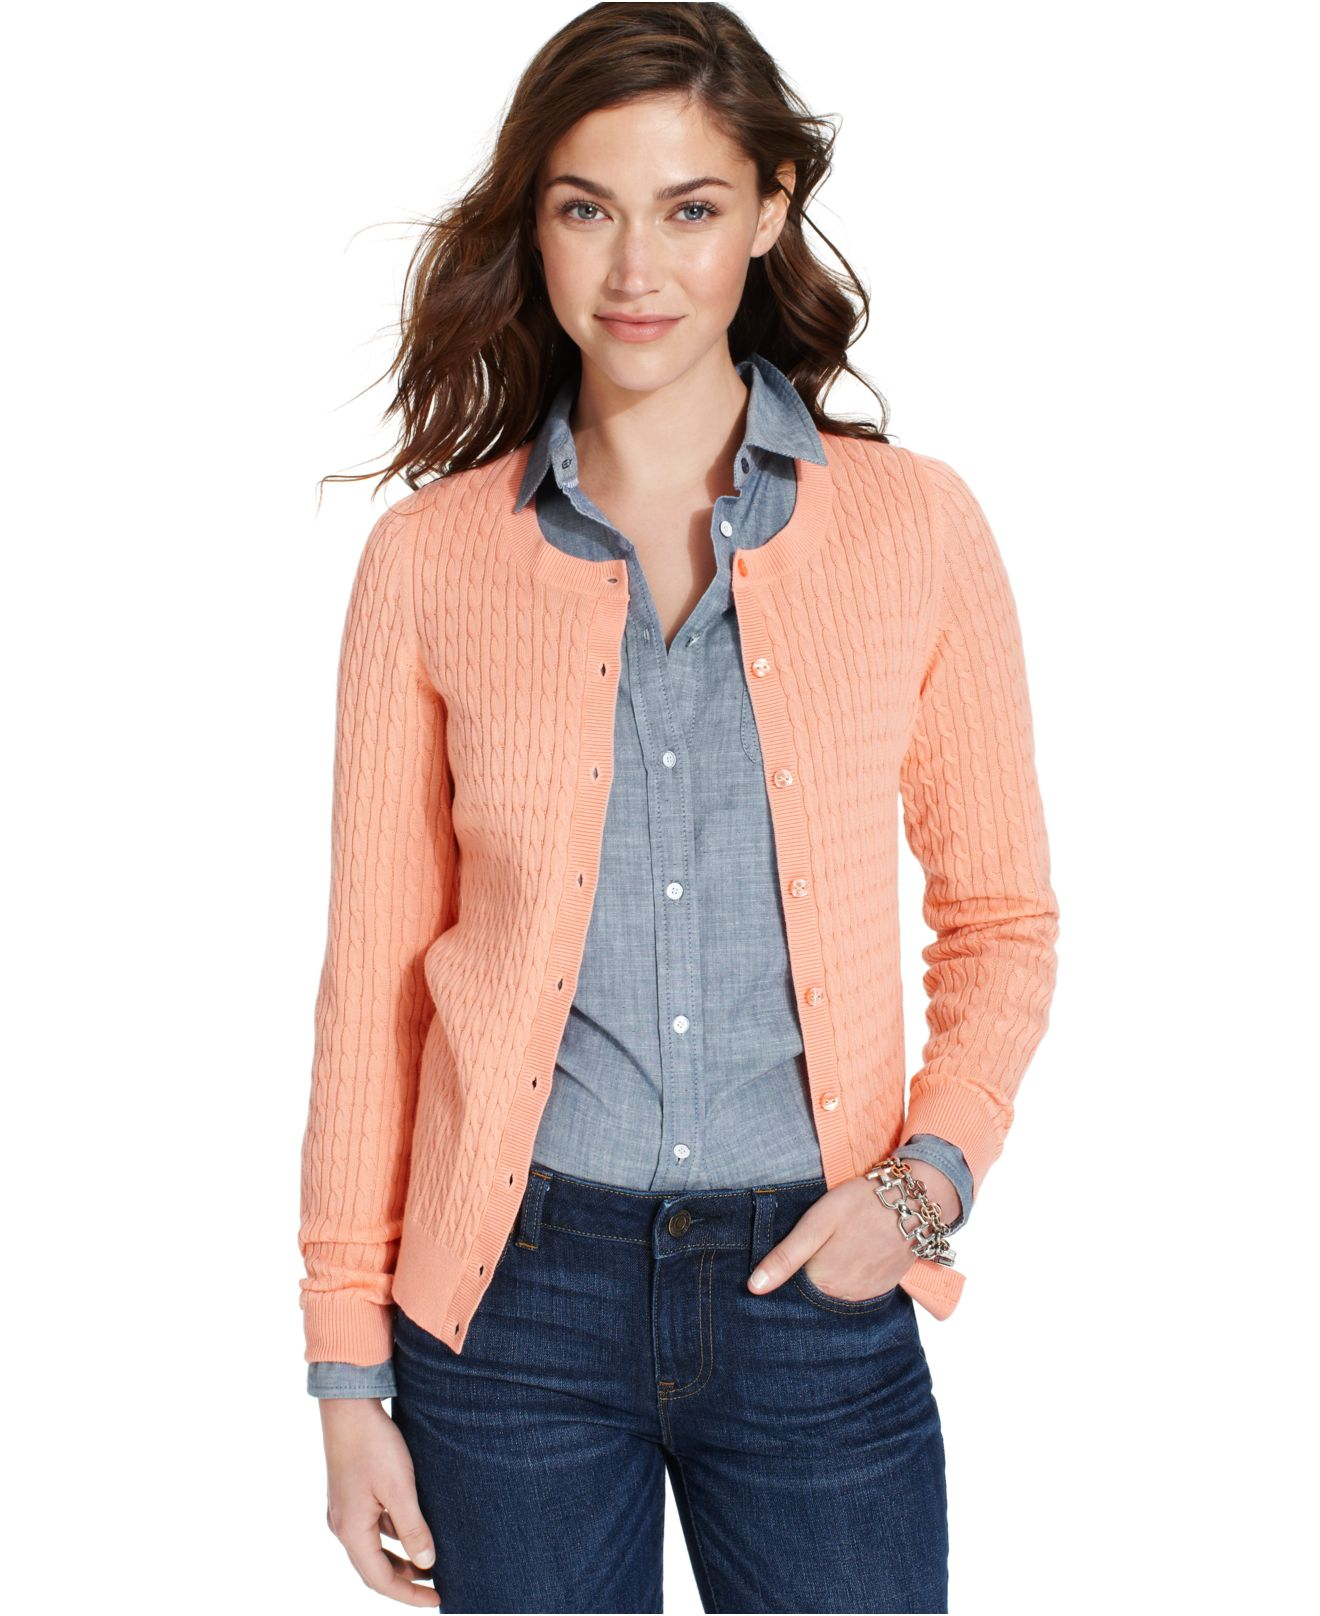 Tommy hilfiger Long-Sleeve Cable-Knit Cardigan in Orange | Lyst